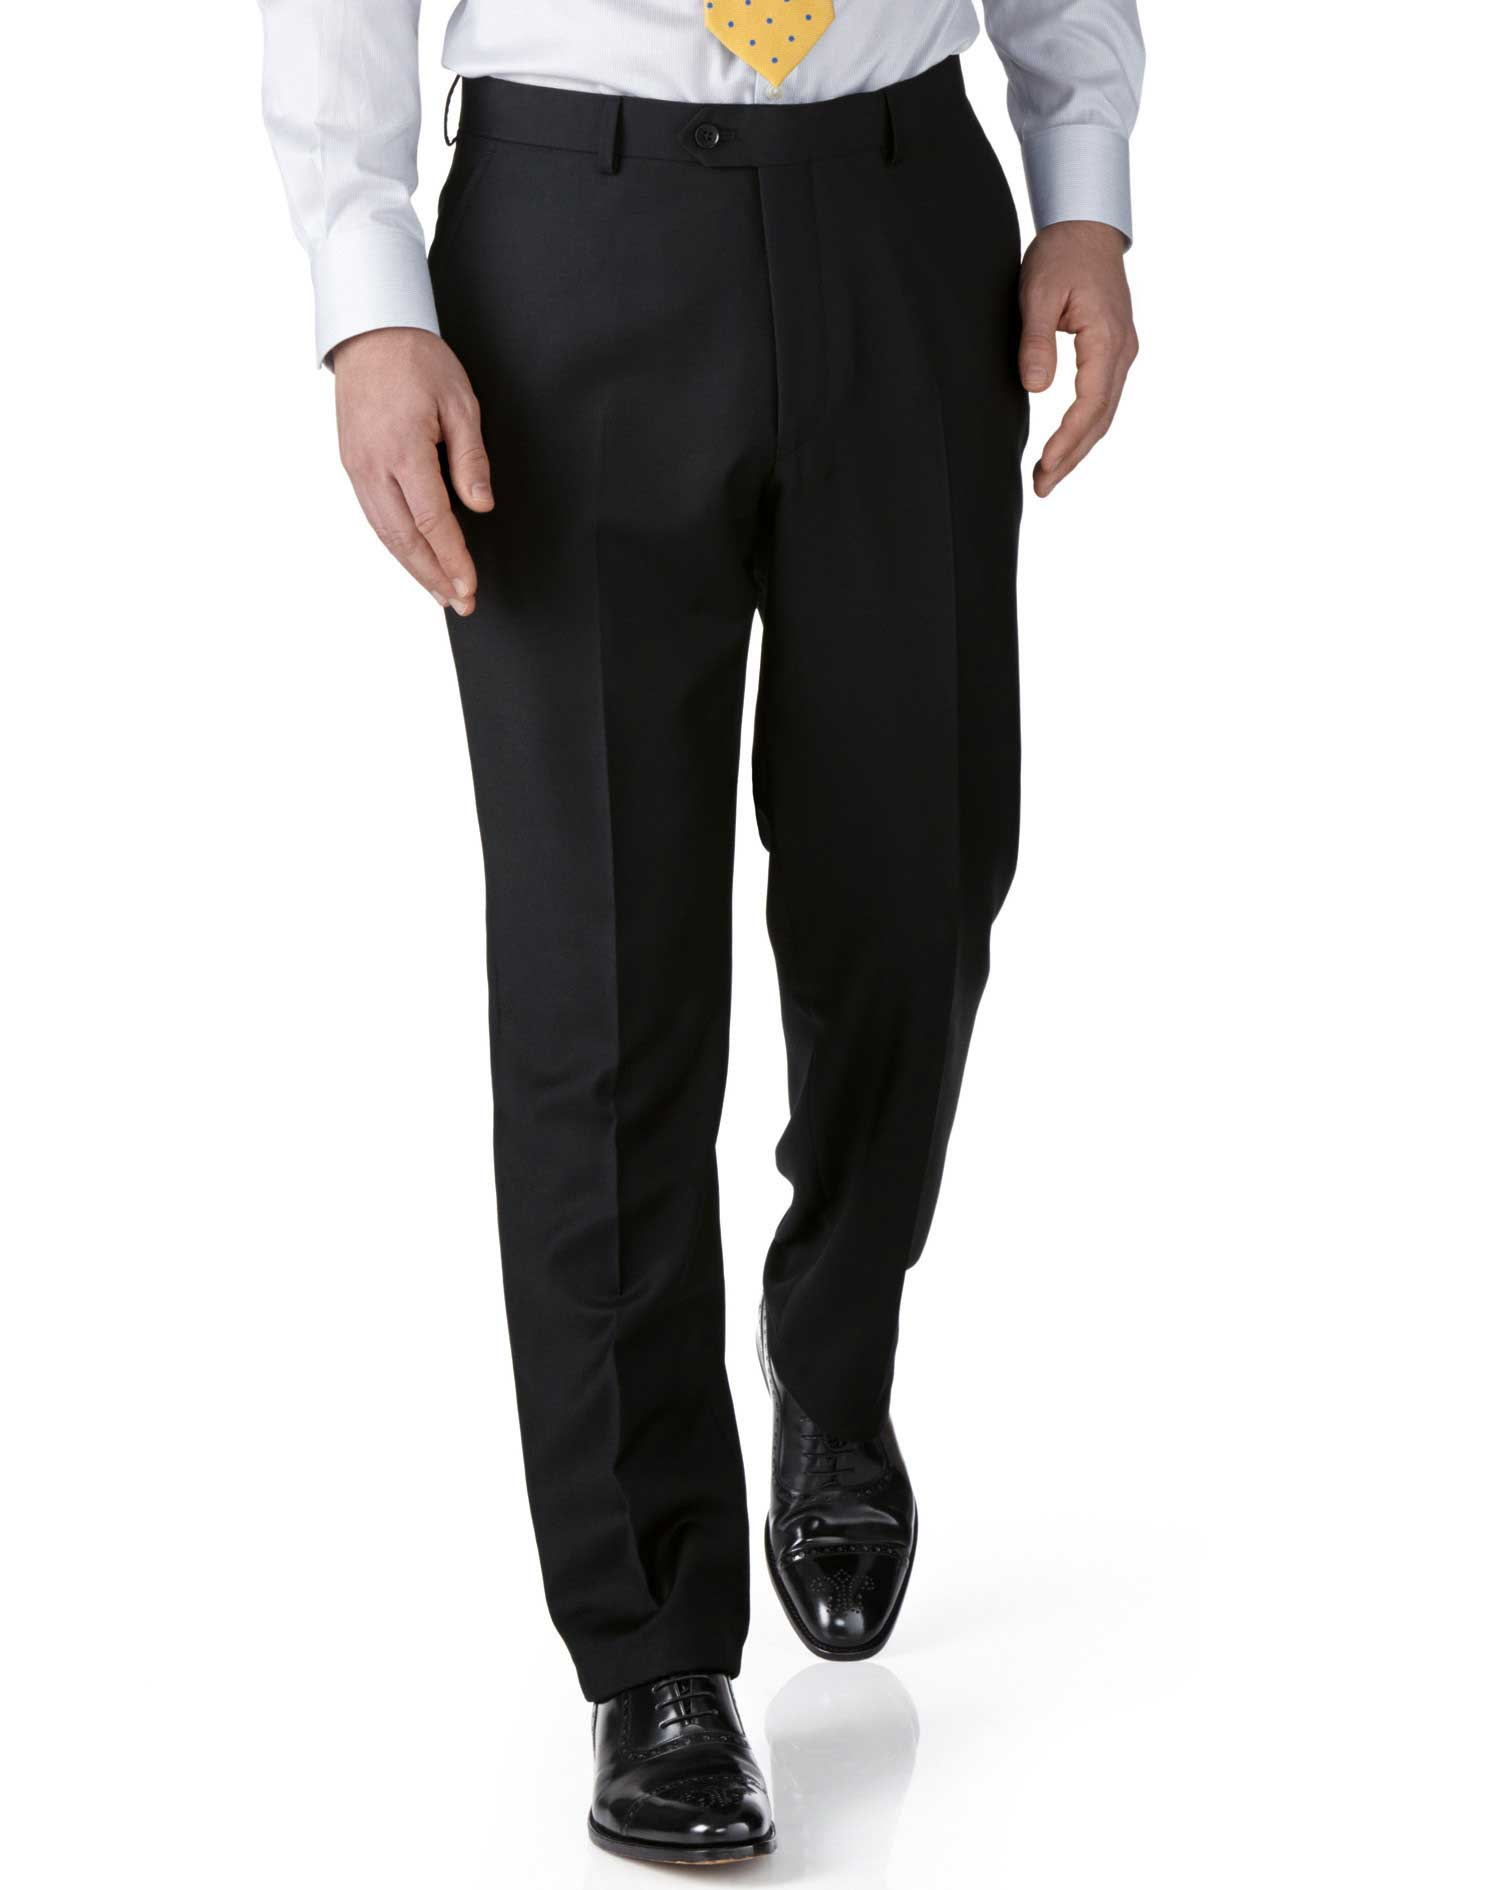 Image of Charles Tyrwhitt Black Extra Slim Fit Twill Business Suit Trousers Size W71 L97 by Charles Tyrwhitt